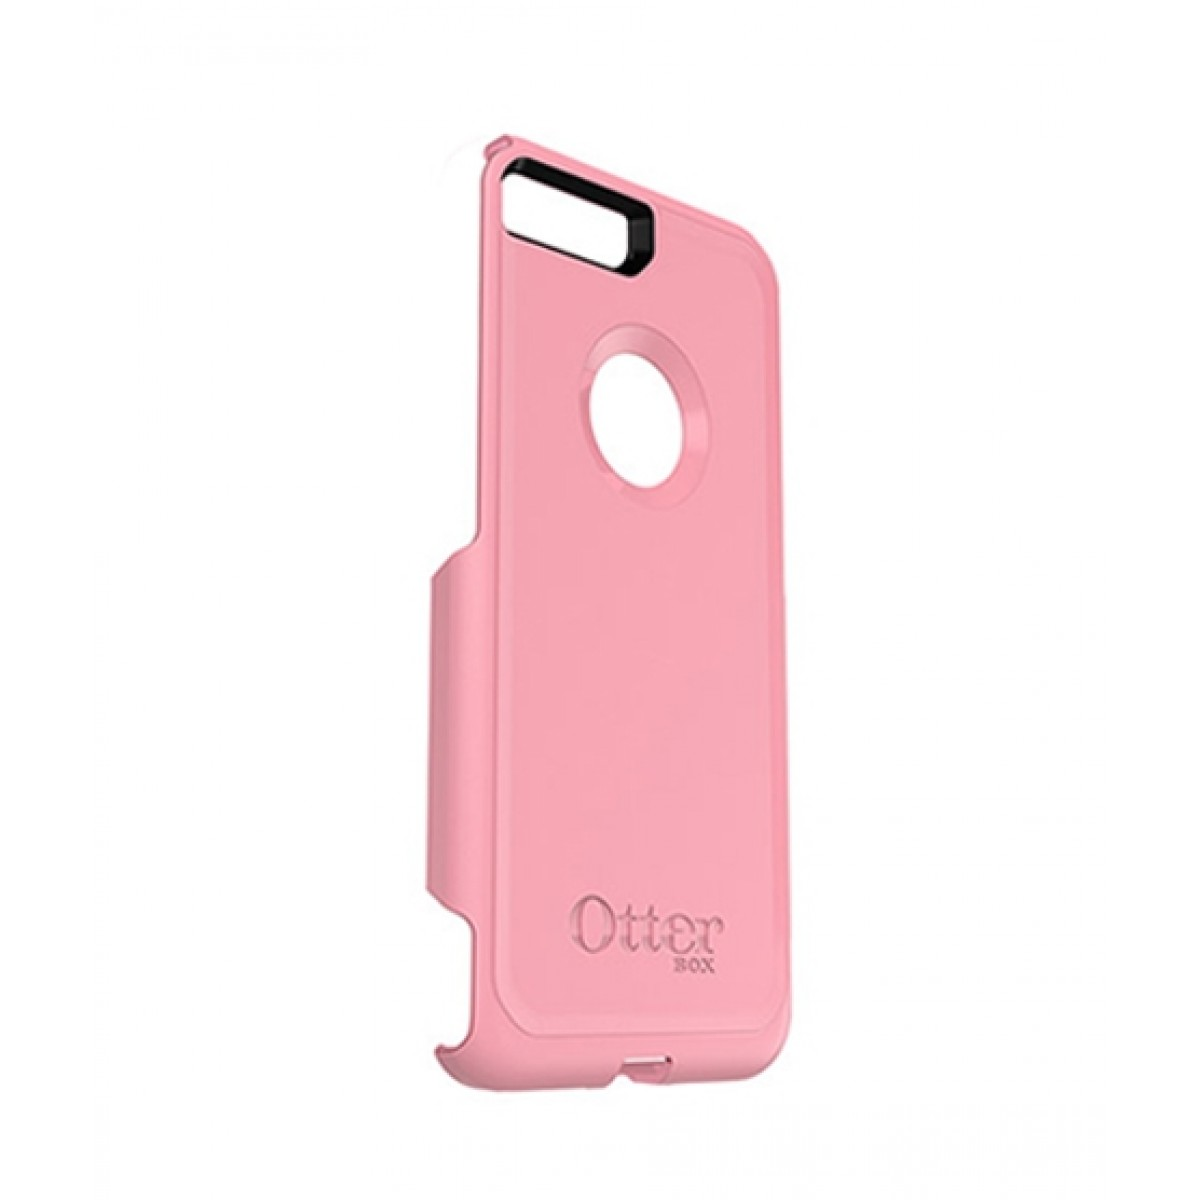 size 40 0be69 9f4a6 OtterBox Commuter Series Shell Rosmarine Pink Case For iPhone 8 Plus